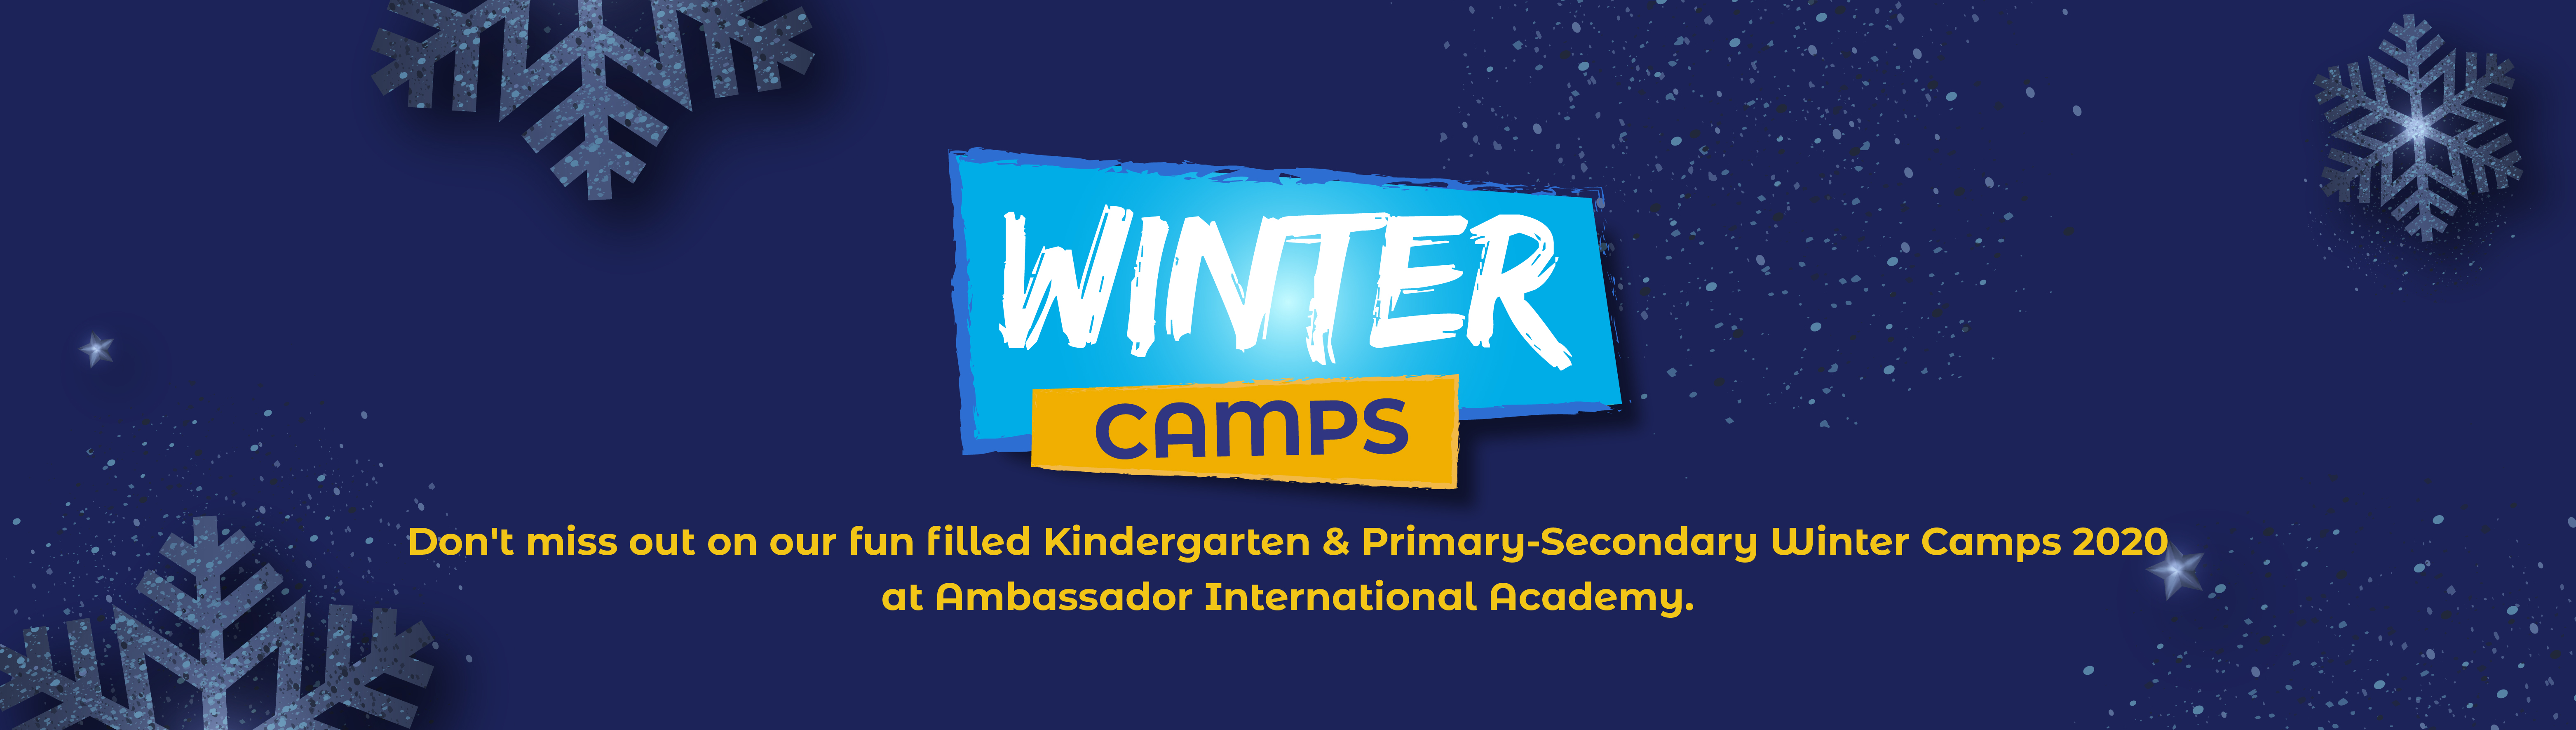 AIA-Winter Camps